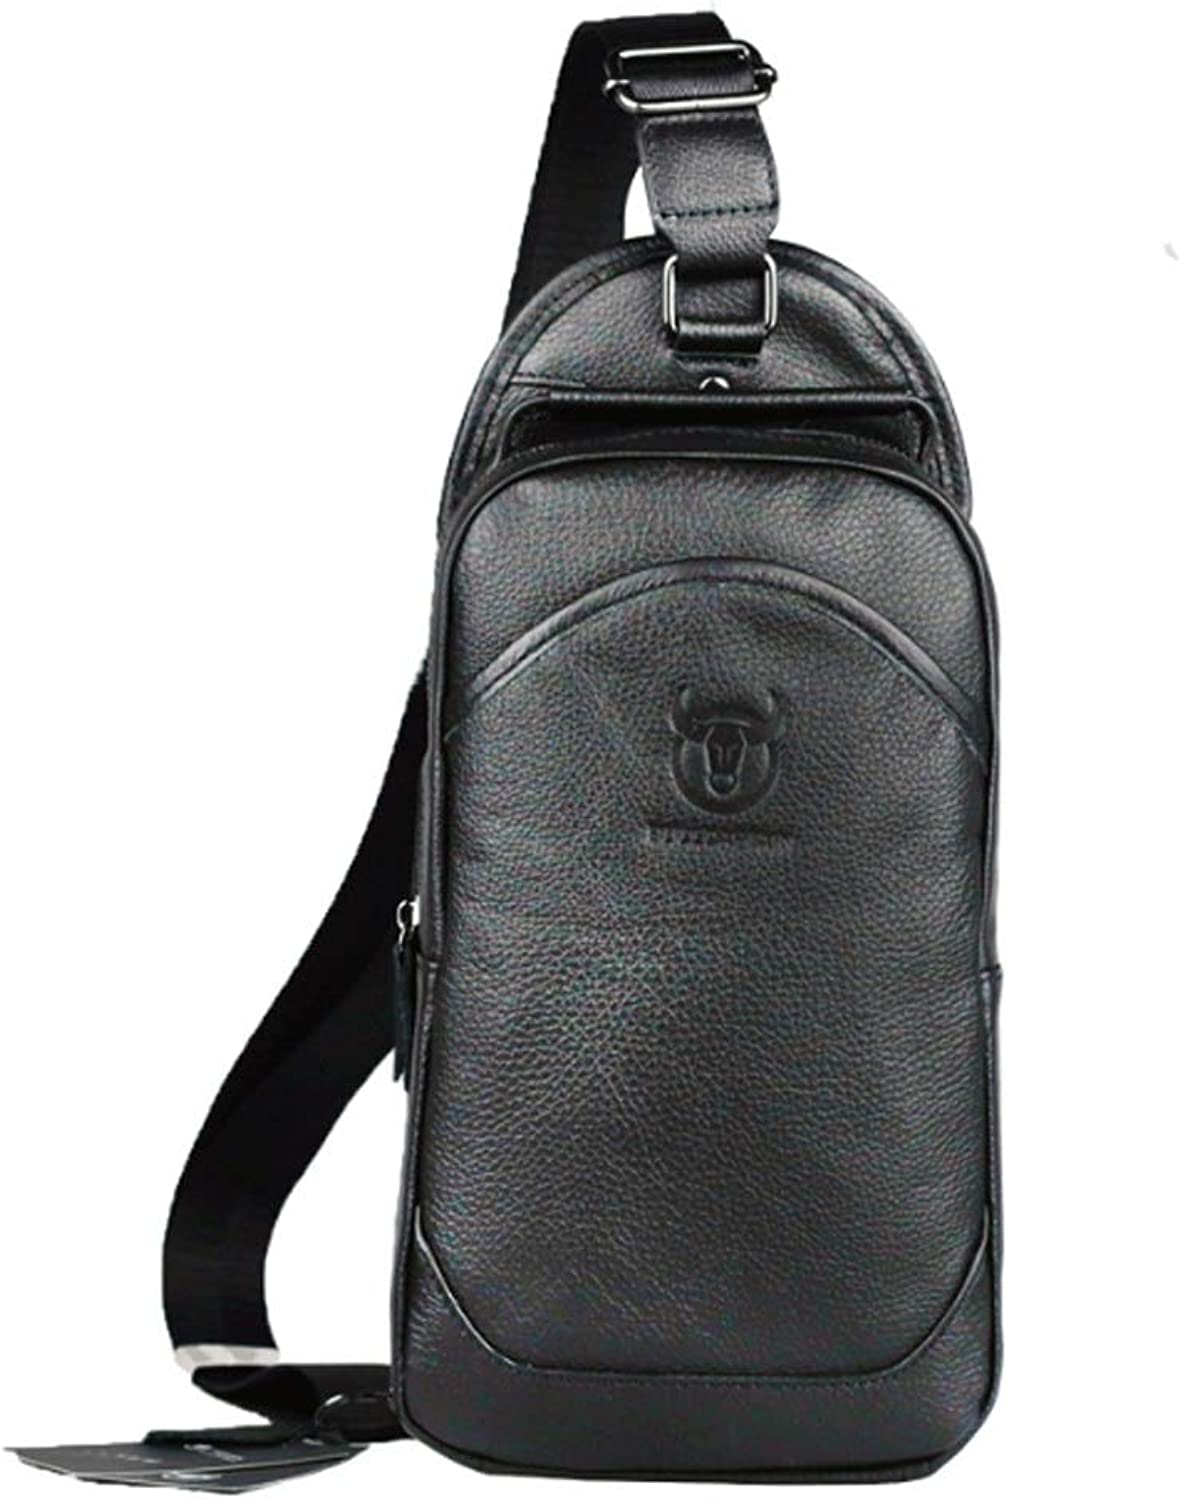 Men's Chest Bag Portable Leather Chest Bag Leather Shoulder Slungs Casual Sports Front Backpack Large Capacity